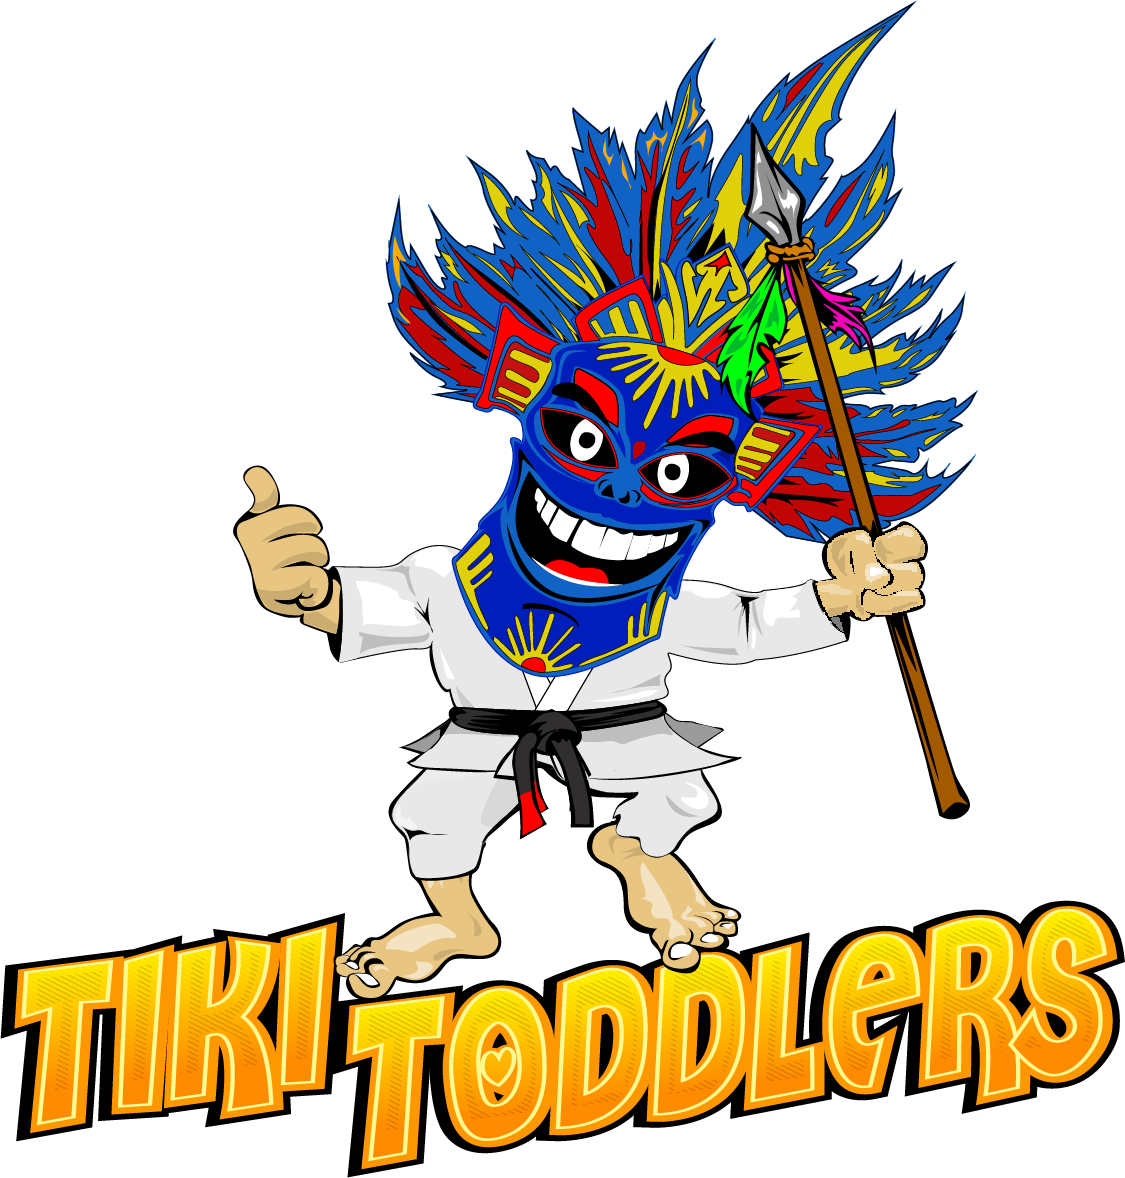 TIKI_TODDLER_LOGO.png